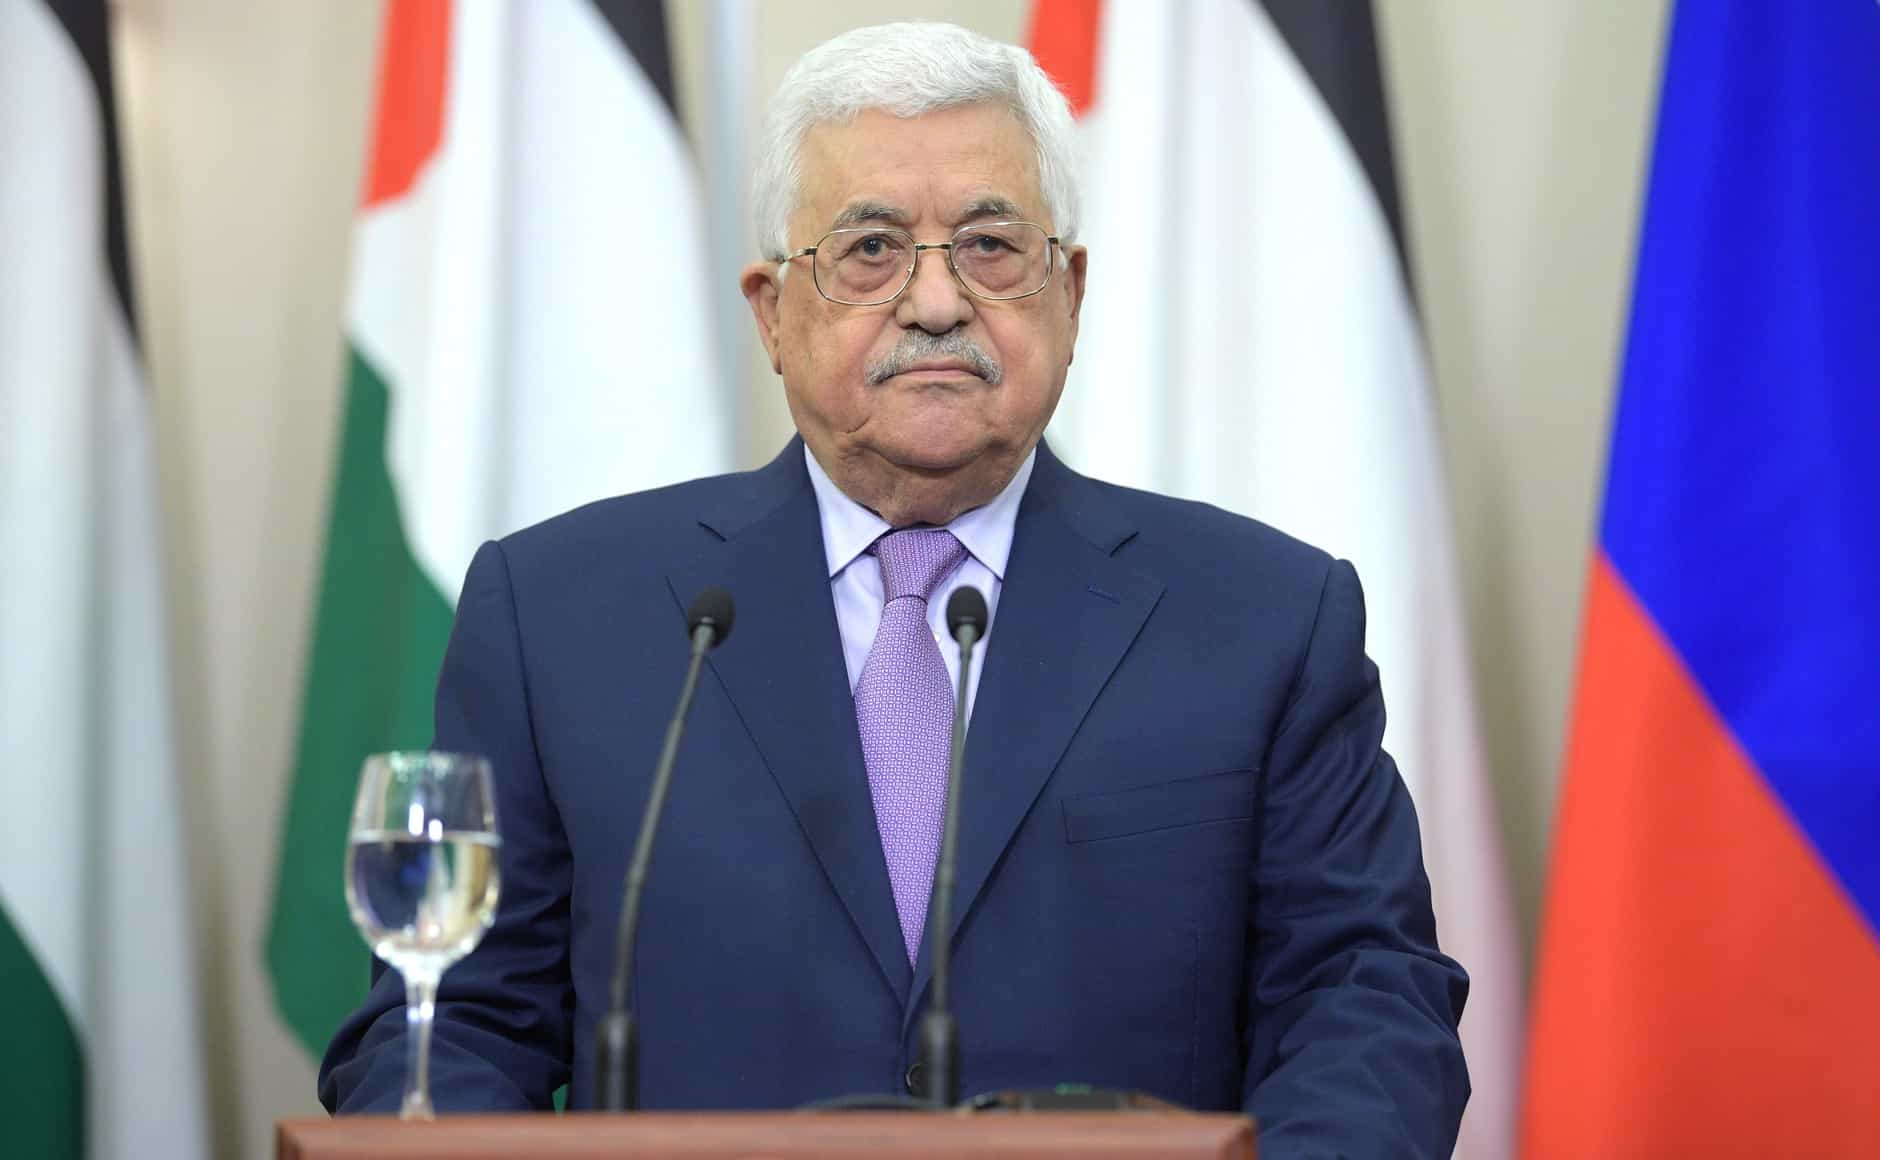 The Palestinian Authority Loses Its Authority